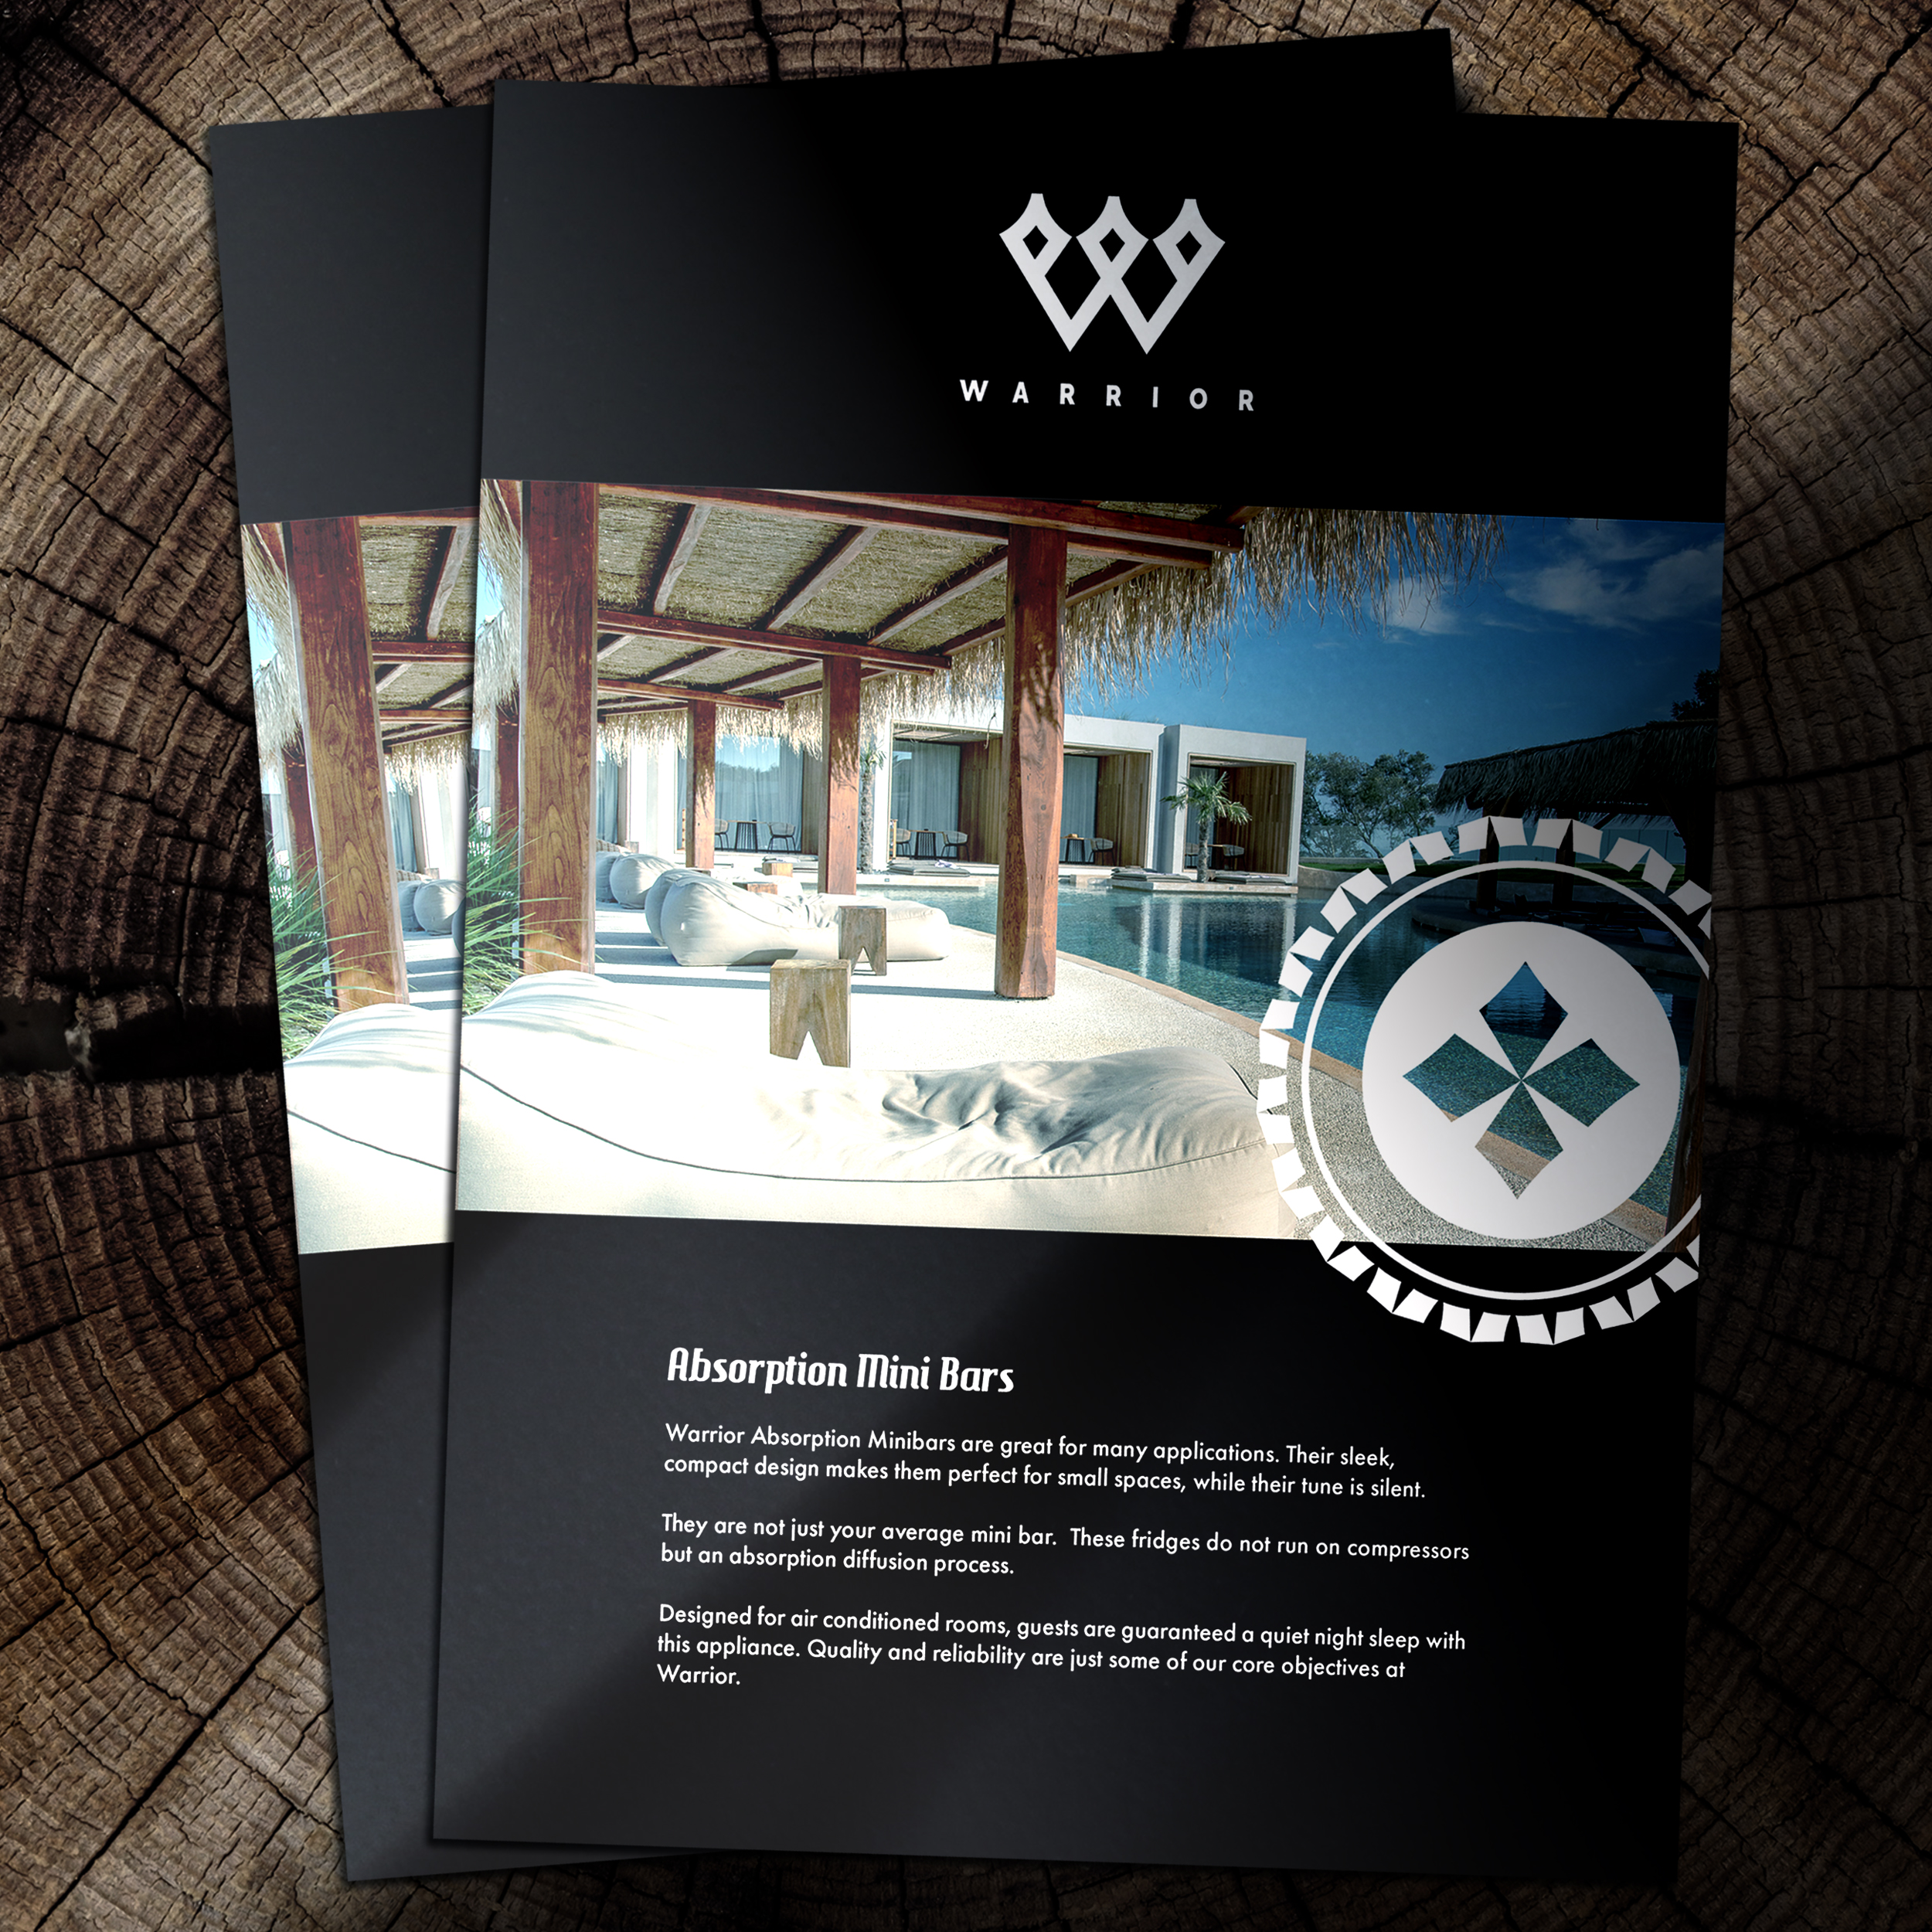 Warrior-mini-bar-brochure2.jpg